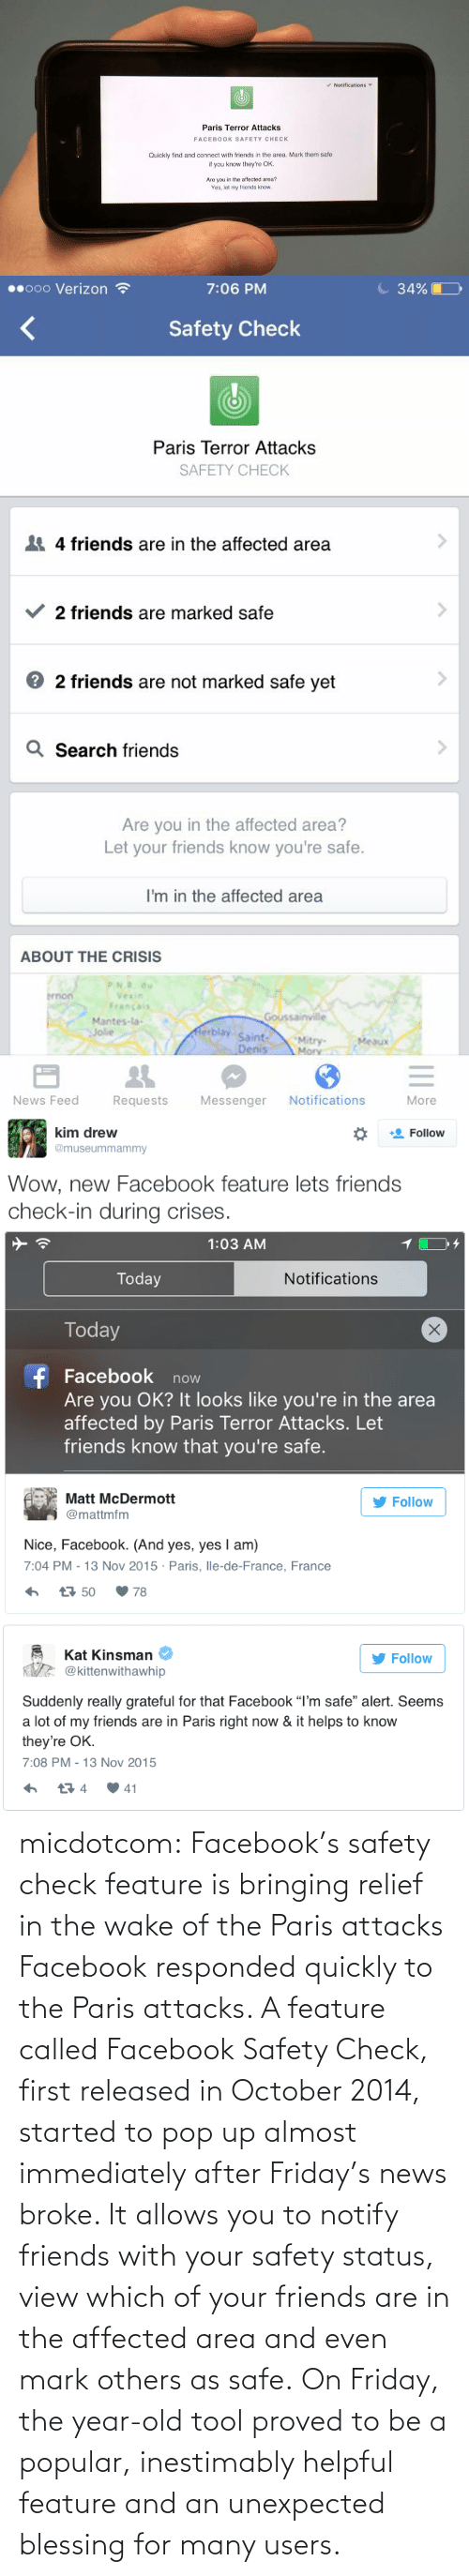 "Marked Safe: v Notifications  Paris Terror Attacks  FACEBOOK SAFETY CHECK  Quickly find and connect with friends in the area. Mark them safe  if you know they're OK.  Are you in the affected area?  Yes, let my friends know.   C 34% |  00000 Verizon ?  7:06 PM  Safety Check  Paris Terror Attacks  SAFETY CHECK  4 friends are in the affected area  2 friends are marked safe  2 friends are not marked safe yet  Q Search friends  Are you in the affected area?  Let your friends know you're safe.  I'm in the affected area  ABOUT THE CRISIS  P.N.R. du  brnon  Vexin  Francais  Goussainville  Mantes-la-  Jolie  Merblay  Saint-  Denis  Mitry-  Mory  Meaux  Notifications  News Feed  Requests  Messenger  More   kim drew  Follow  @museummammy  Wow, new Facebook feature lets friends  check-in during crises.   1:03 AM  Today  Notifications  Today  f Facebook now  Are you OK? It looks like you're in the area  affected by Paris Terror Attacks. Let  friends know that you're safe.  Matt McDermott  Follow  @mattmfm  Nice, Facebook. (And yes, yes I am)  7:04 PM - 13 Nov 2015 · Paris, lle-de-France, France  t7 50  78   Kat Kinsman  Follow  @kittenwithawhip  Suddenly really grateful for that Facebook ""I'm safe"" alert. Seems  a lot of my friends are in Paris right now & it helps to know  they're OK.  7:08 PM - 13 Nov 2015  17 4  41 micdotcom:  Facebook's safety check feature is bringing relief in the wake of the Paris attacks Facebook responded quickly to the Paris attacks. A feature called Facebook Safety Check, first released in October 2014, started to pop up almost immediately after Friday's news broke. It allows you to notify friends with your safety status, view which of your friends are in the affected area and even mark others as safe. On Friday, the year-old tool proved to be a popular, inestimably helpful feature and an unexpected blessing for many users."